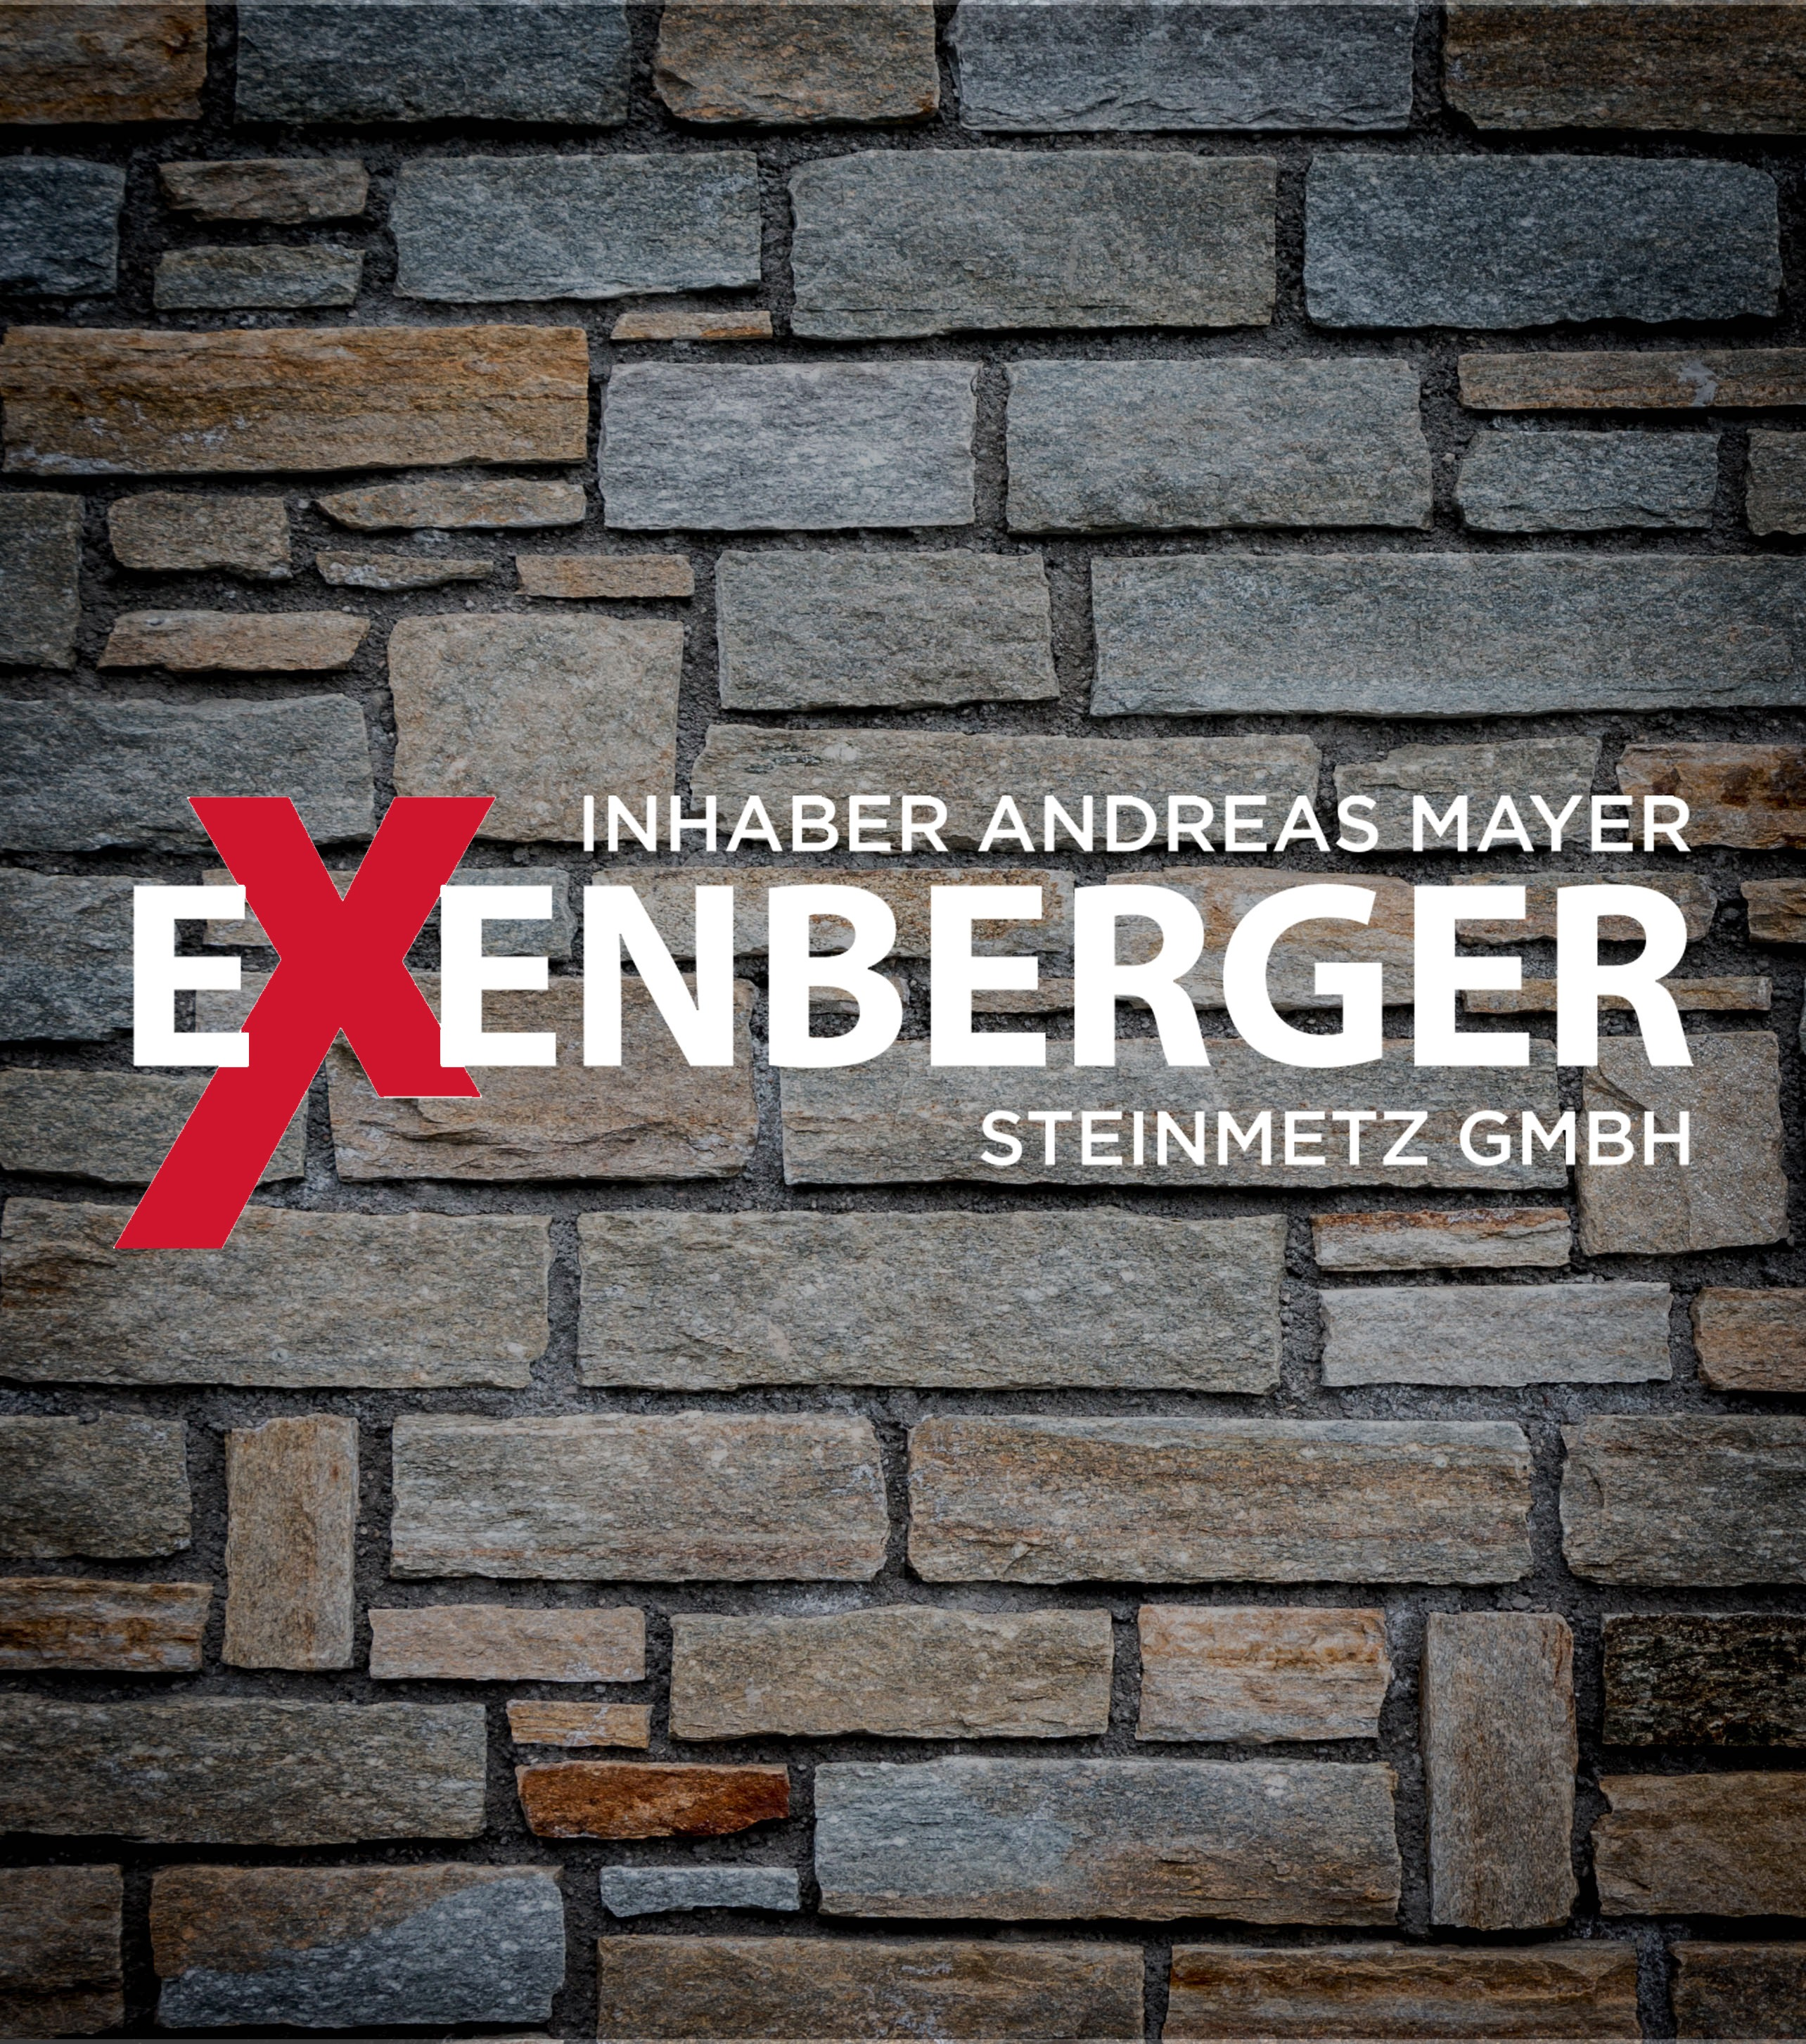 exenberger-featured